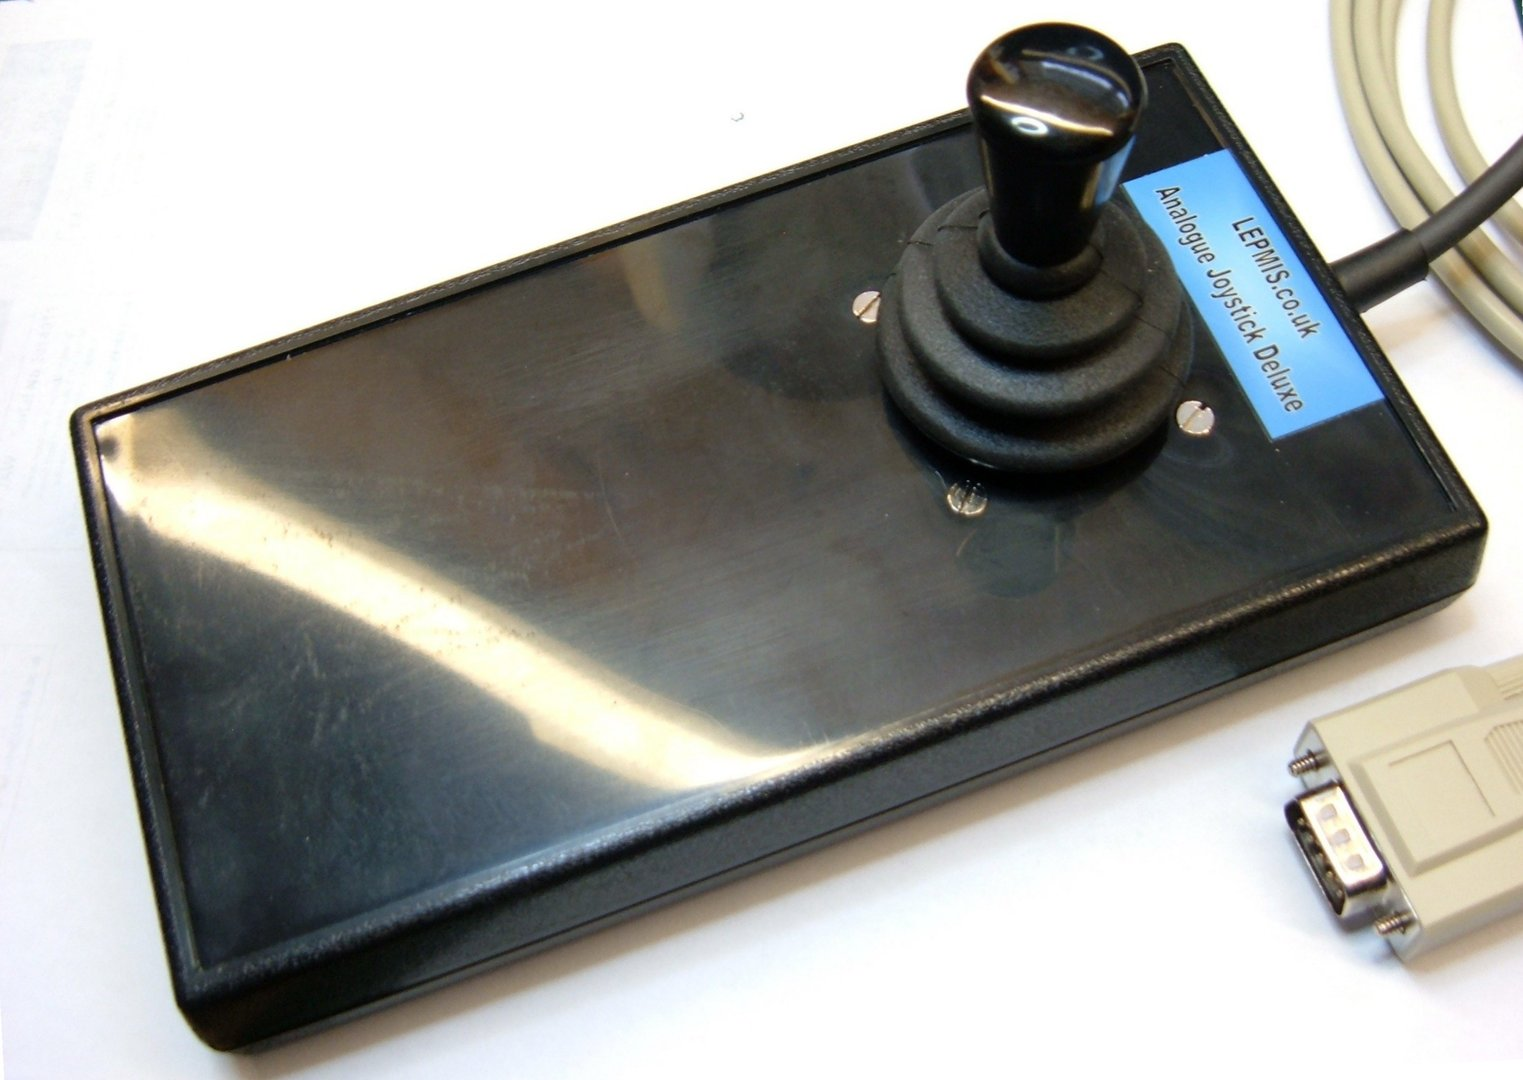 Analogue Joystick Deluxe - Flat case